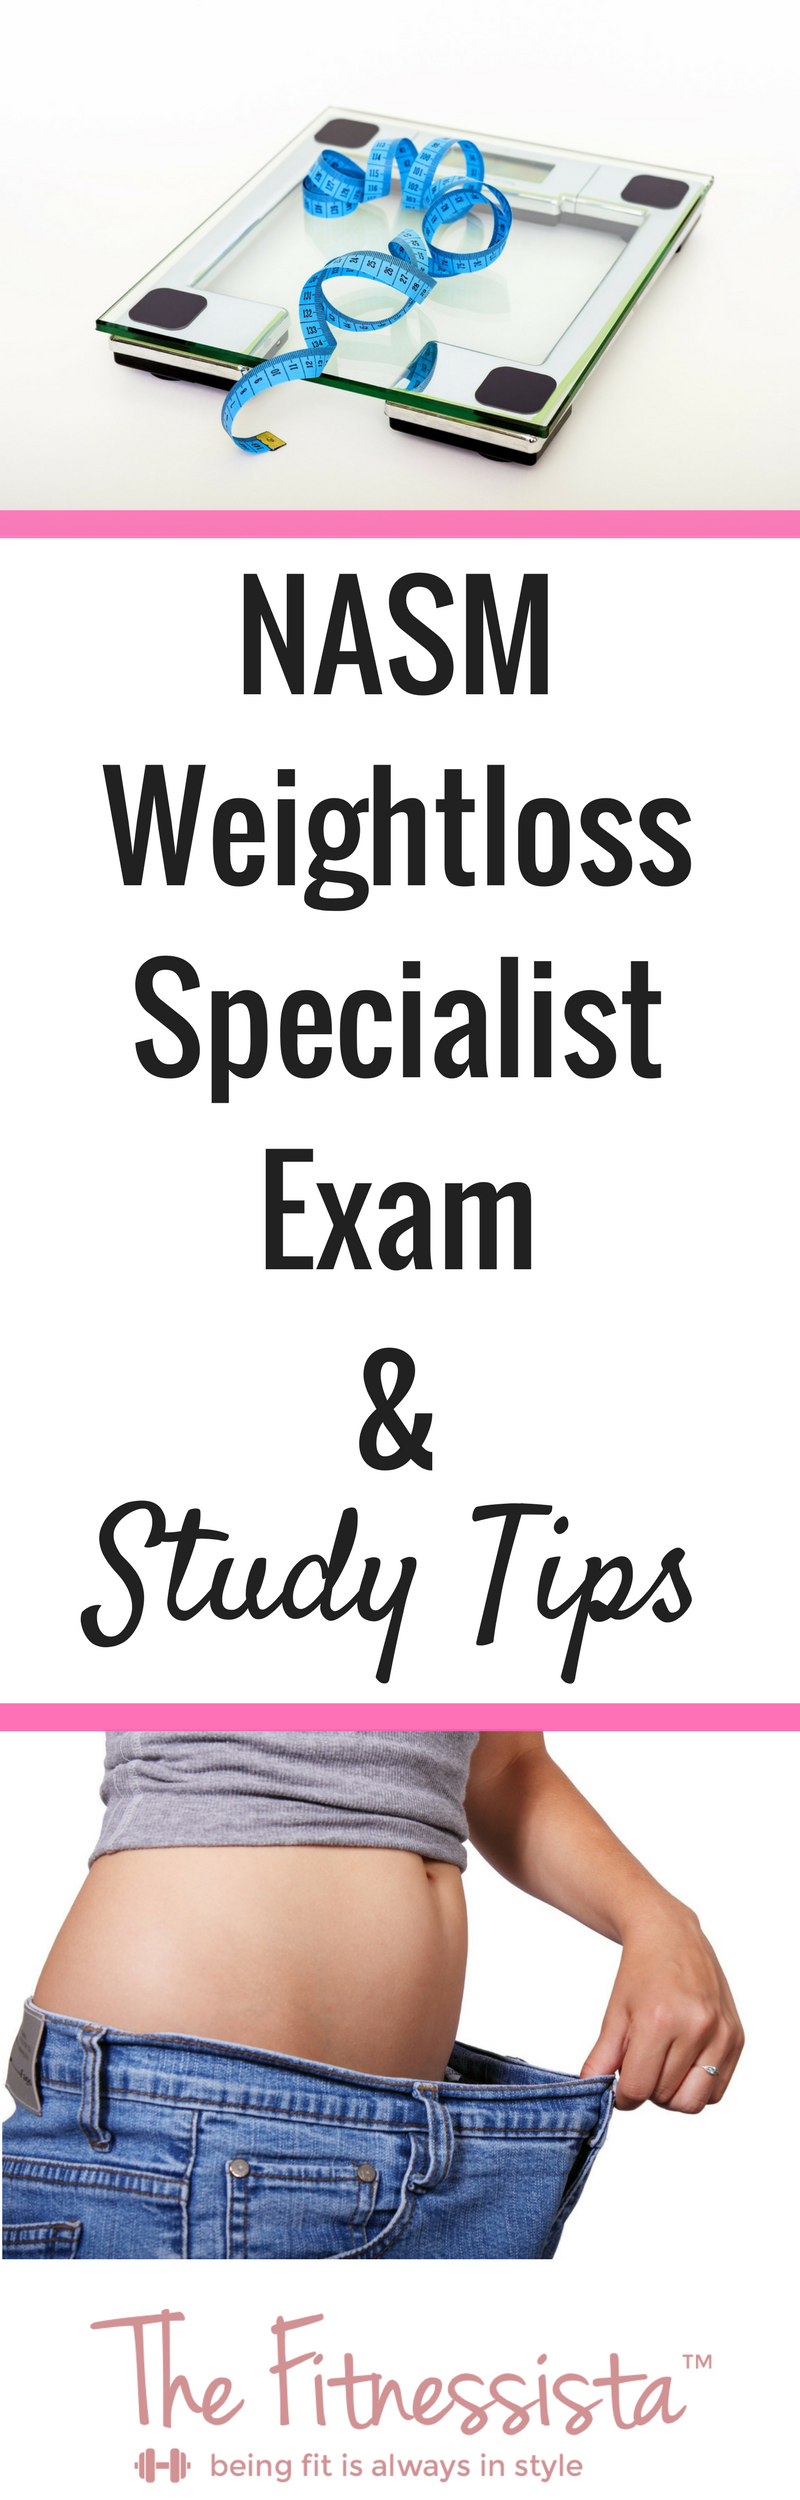 Nasm Weight Loss Specialist Exam Study Tips The Fitnessista